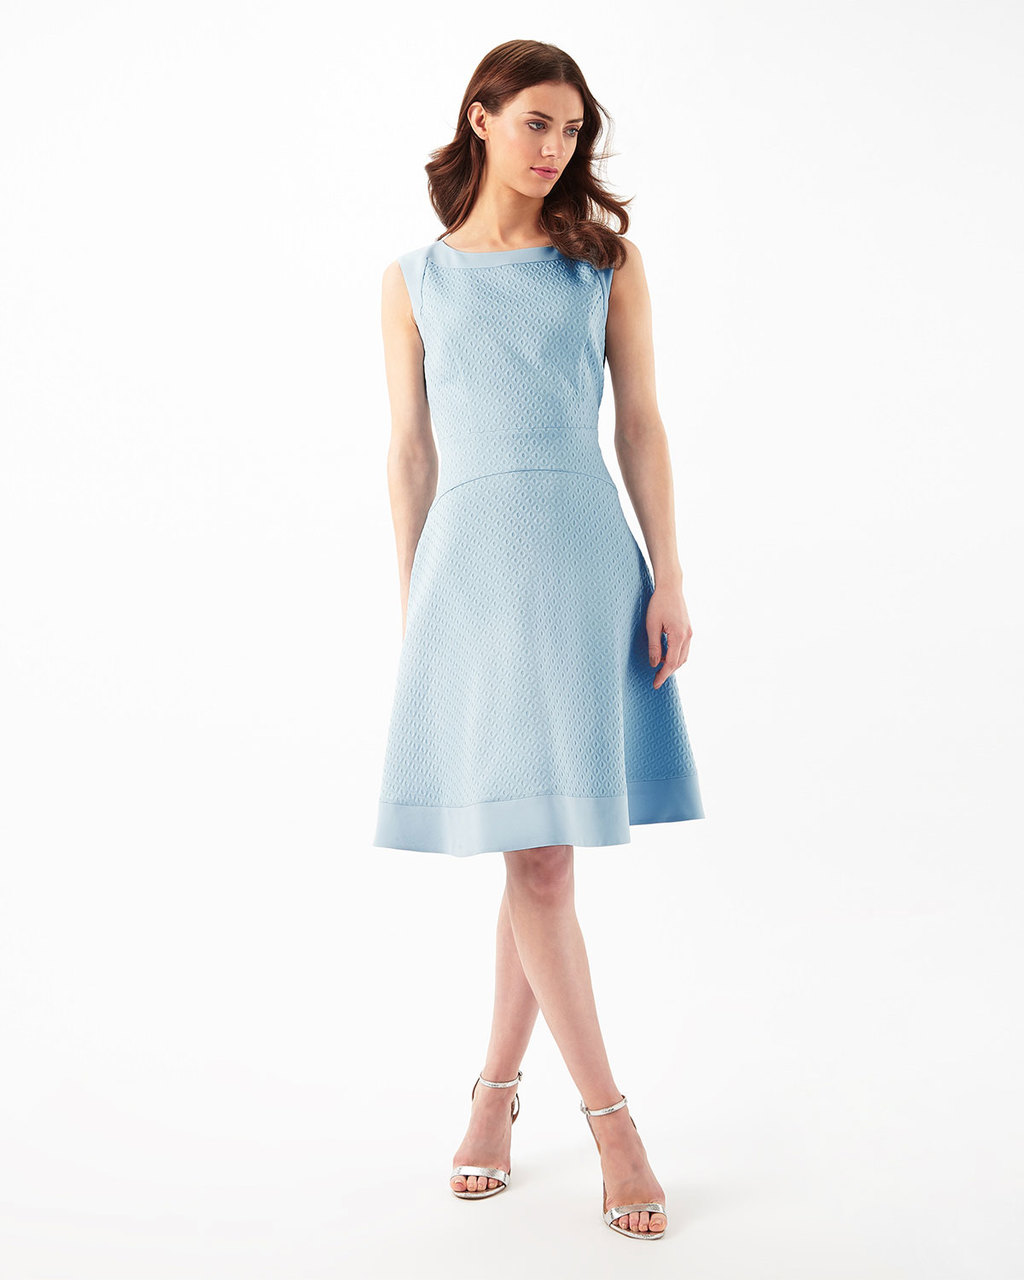 Francine Dress - pattern: plain; sleeve style: sleeveless; predominant colour: pale blue; length: on the knee; fit: fitted at waist & bust; style: fit & flare; fibres: cotton - mix; occasions: occasion; neckline: crew; sleeve length: sleeveless; pattern type: fabric; texture group: other - light to midweight; season: s/s 2016